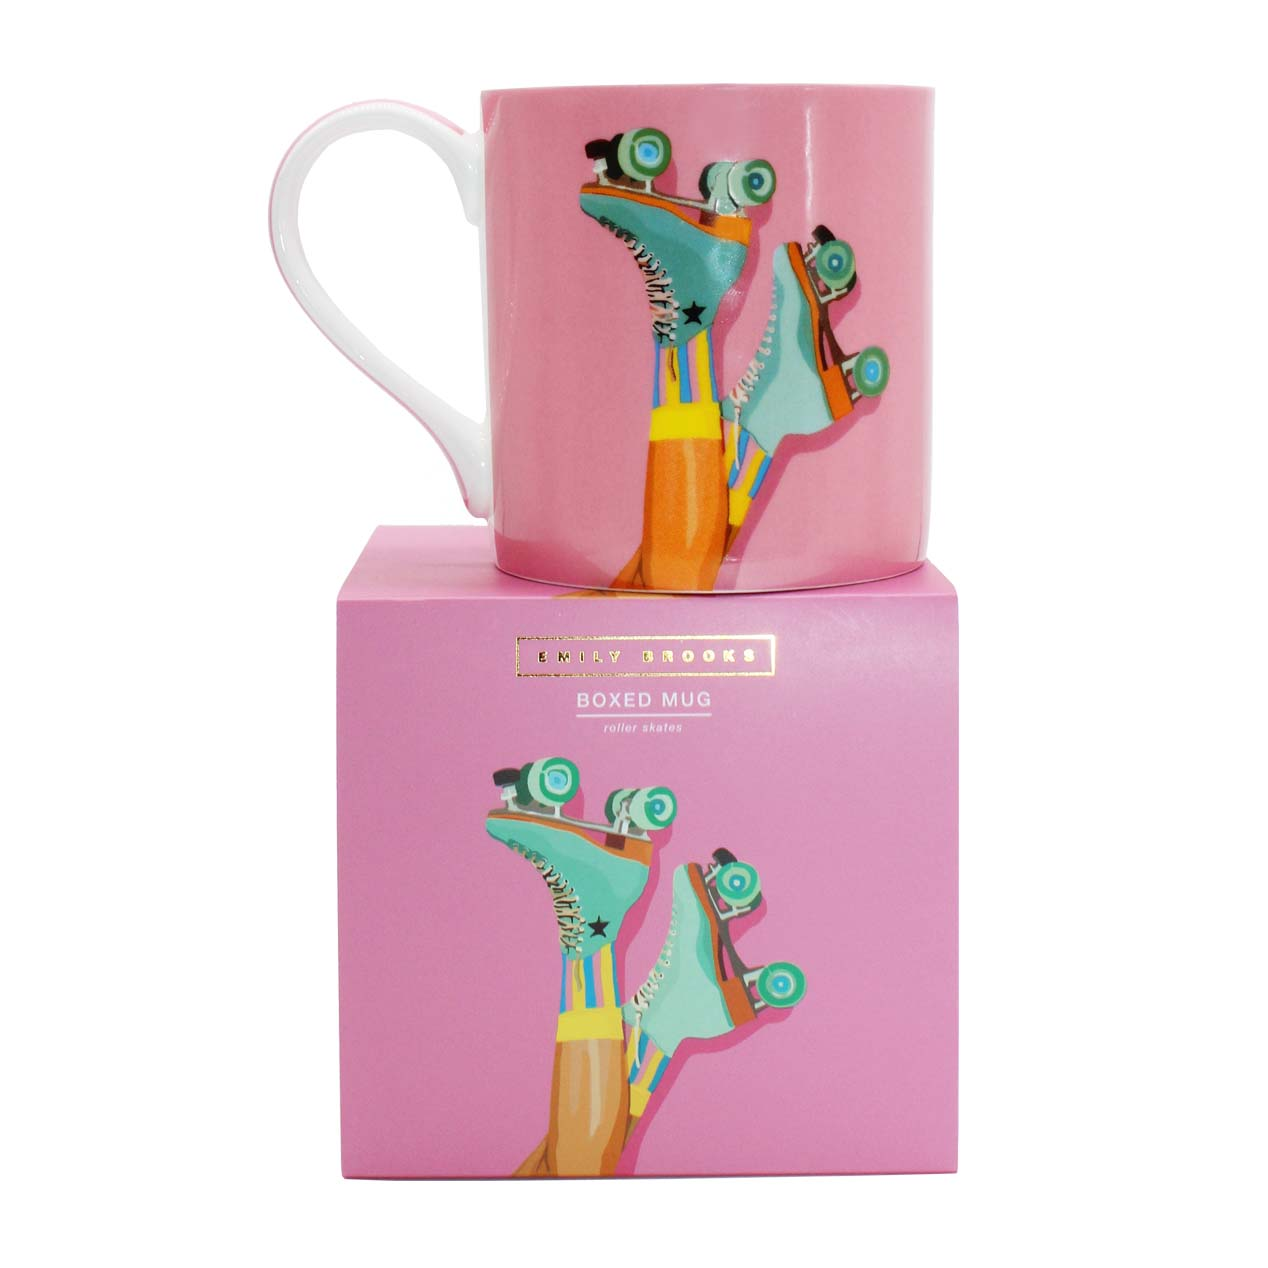 Emily Brooks Boxed Mug Skates Sparkle Gift